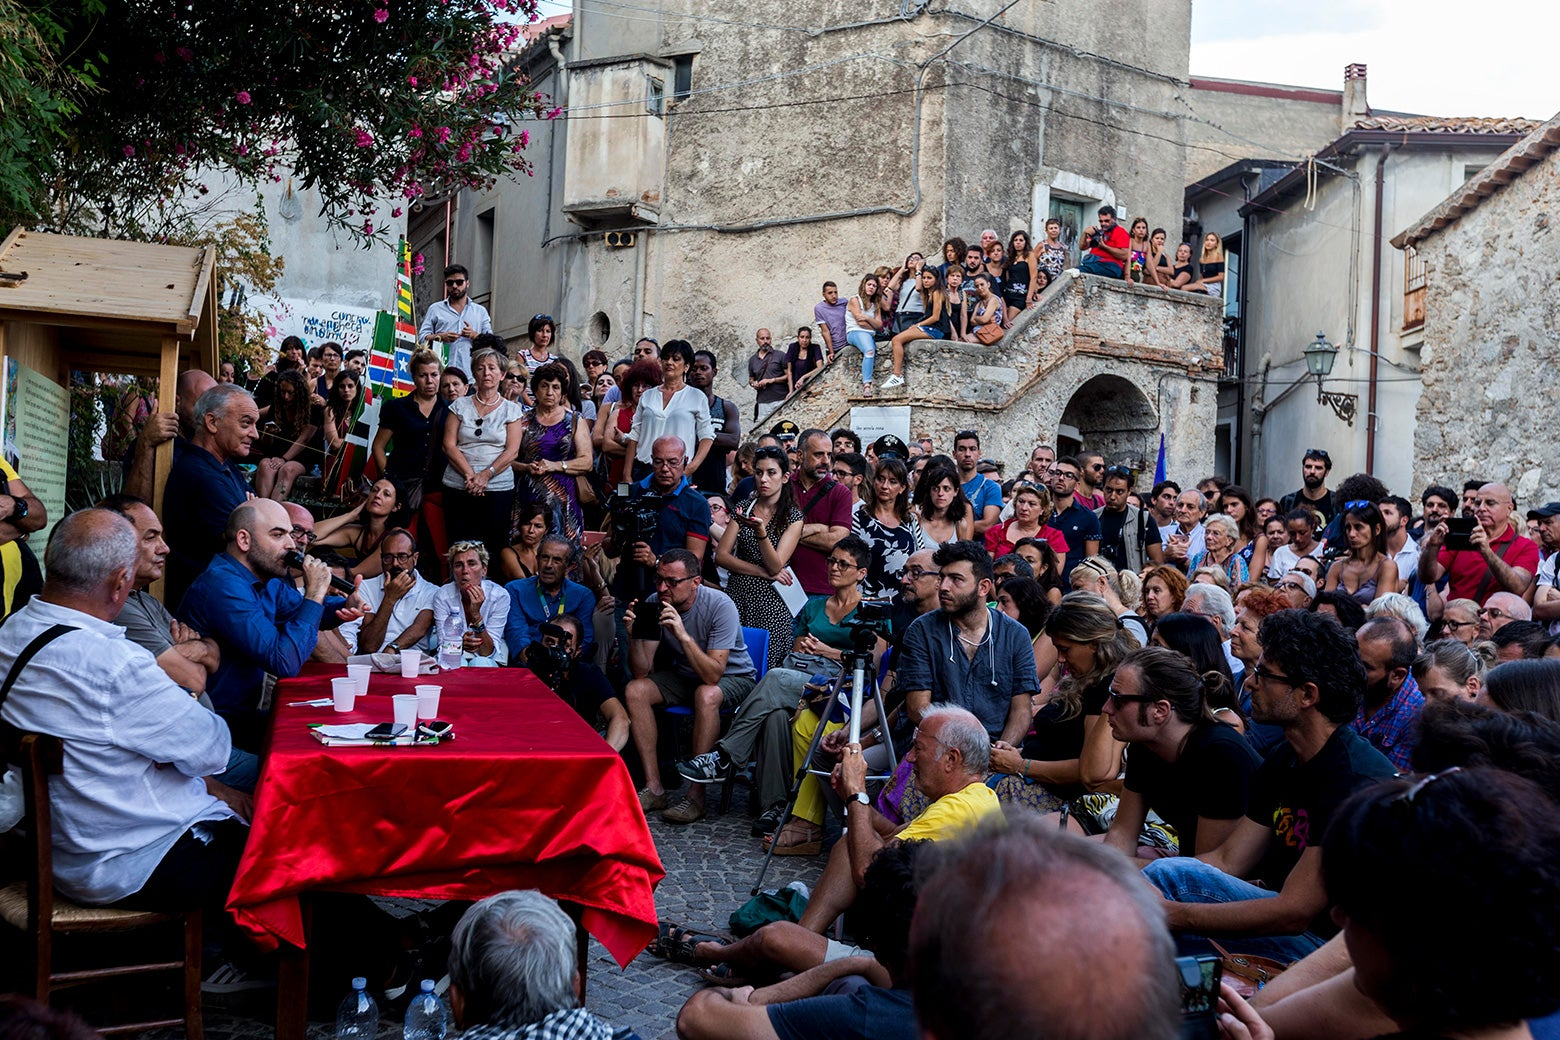 People gathering in the town of Riace.